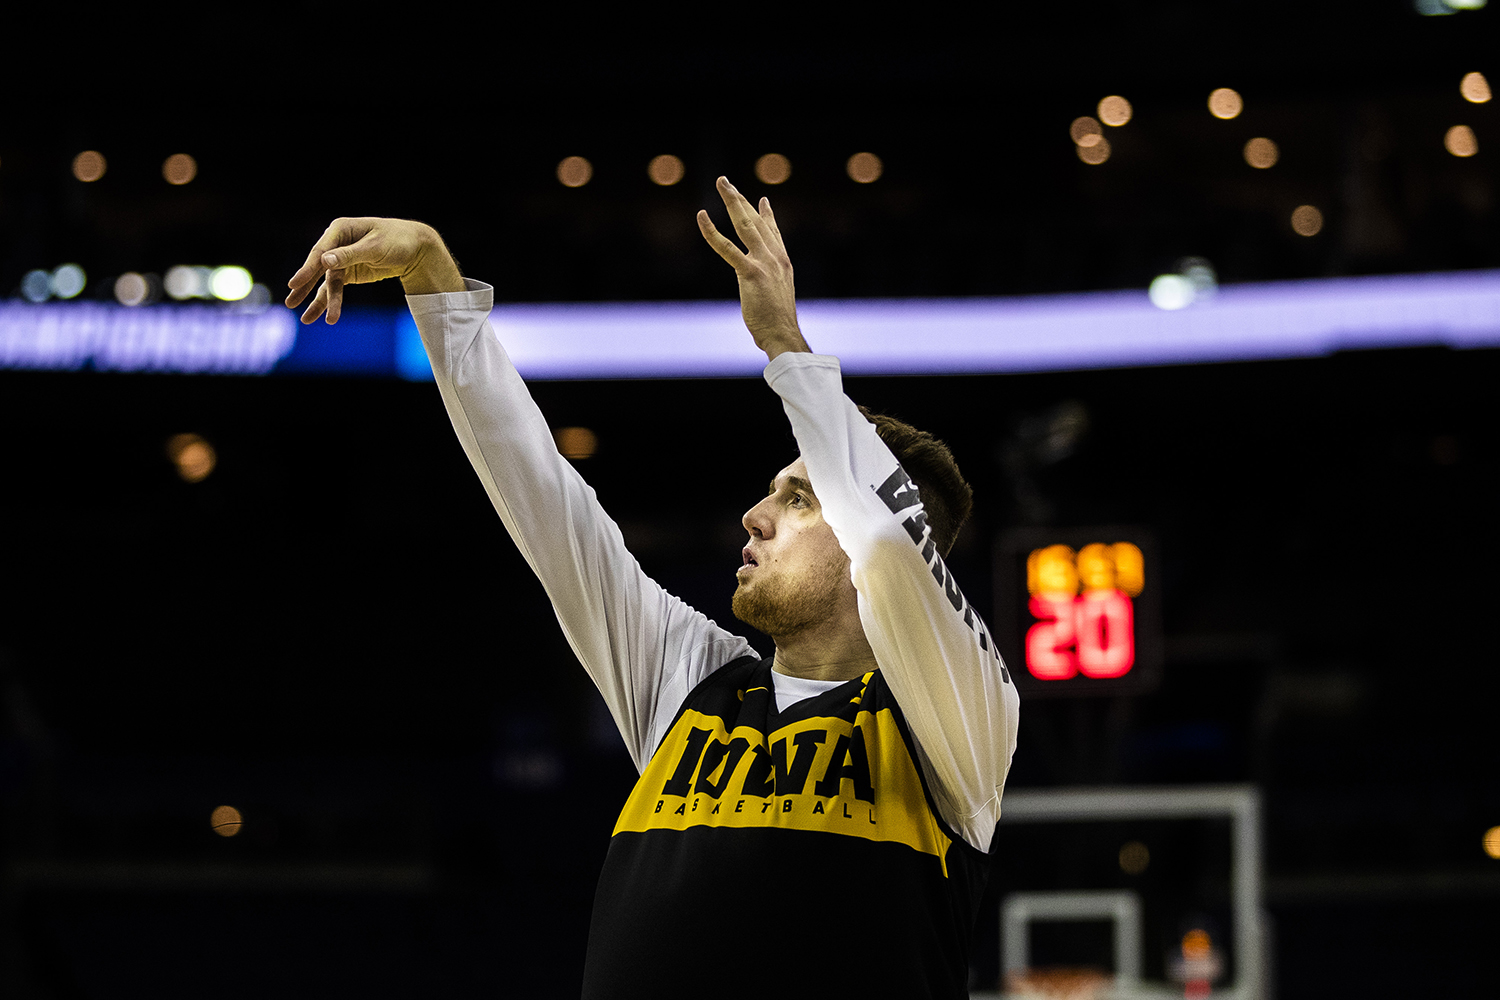 Iowa guard Jordan Bohannon shoots the ball during the Iowa basketball practice at Nationwide Arena in Columbus, Ohio on Thursday, March 21, 2019. The Hawkeyes will compete against the Cincinnati Bearcats tomorrow in the NCAA Tournament.